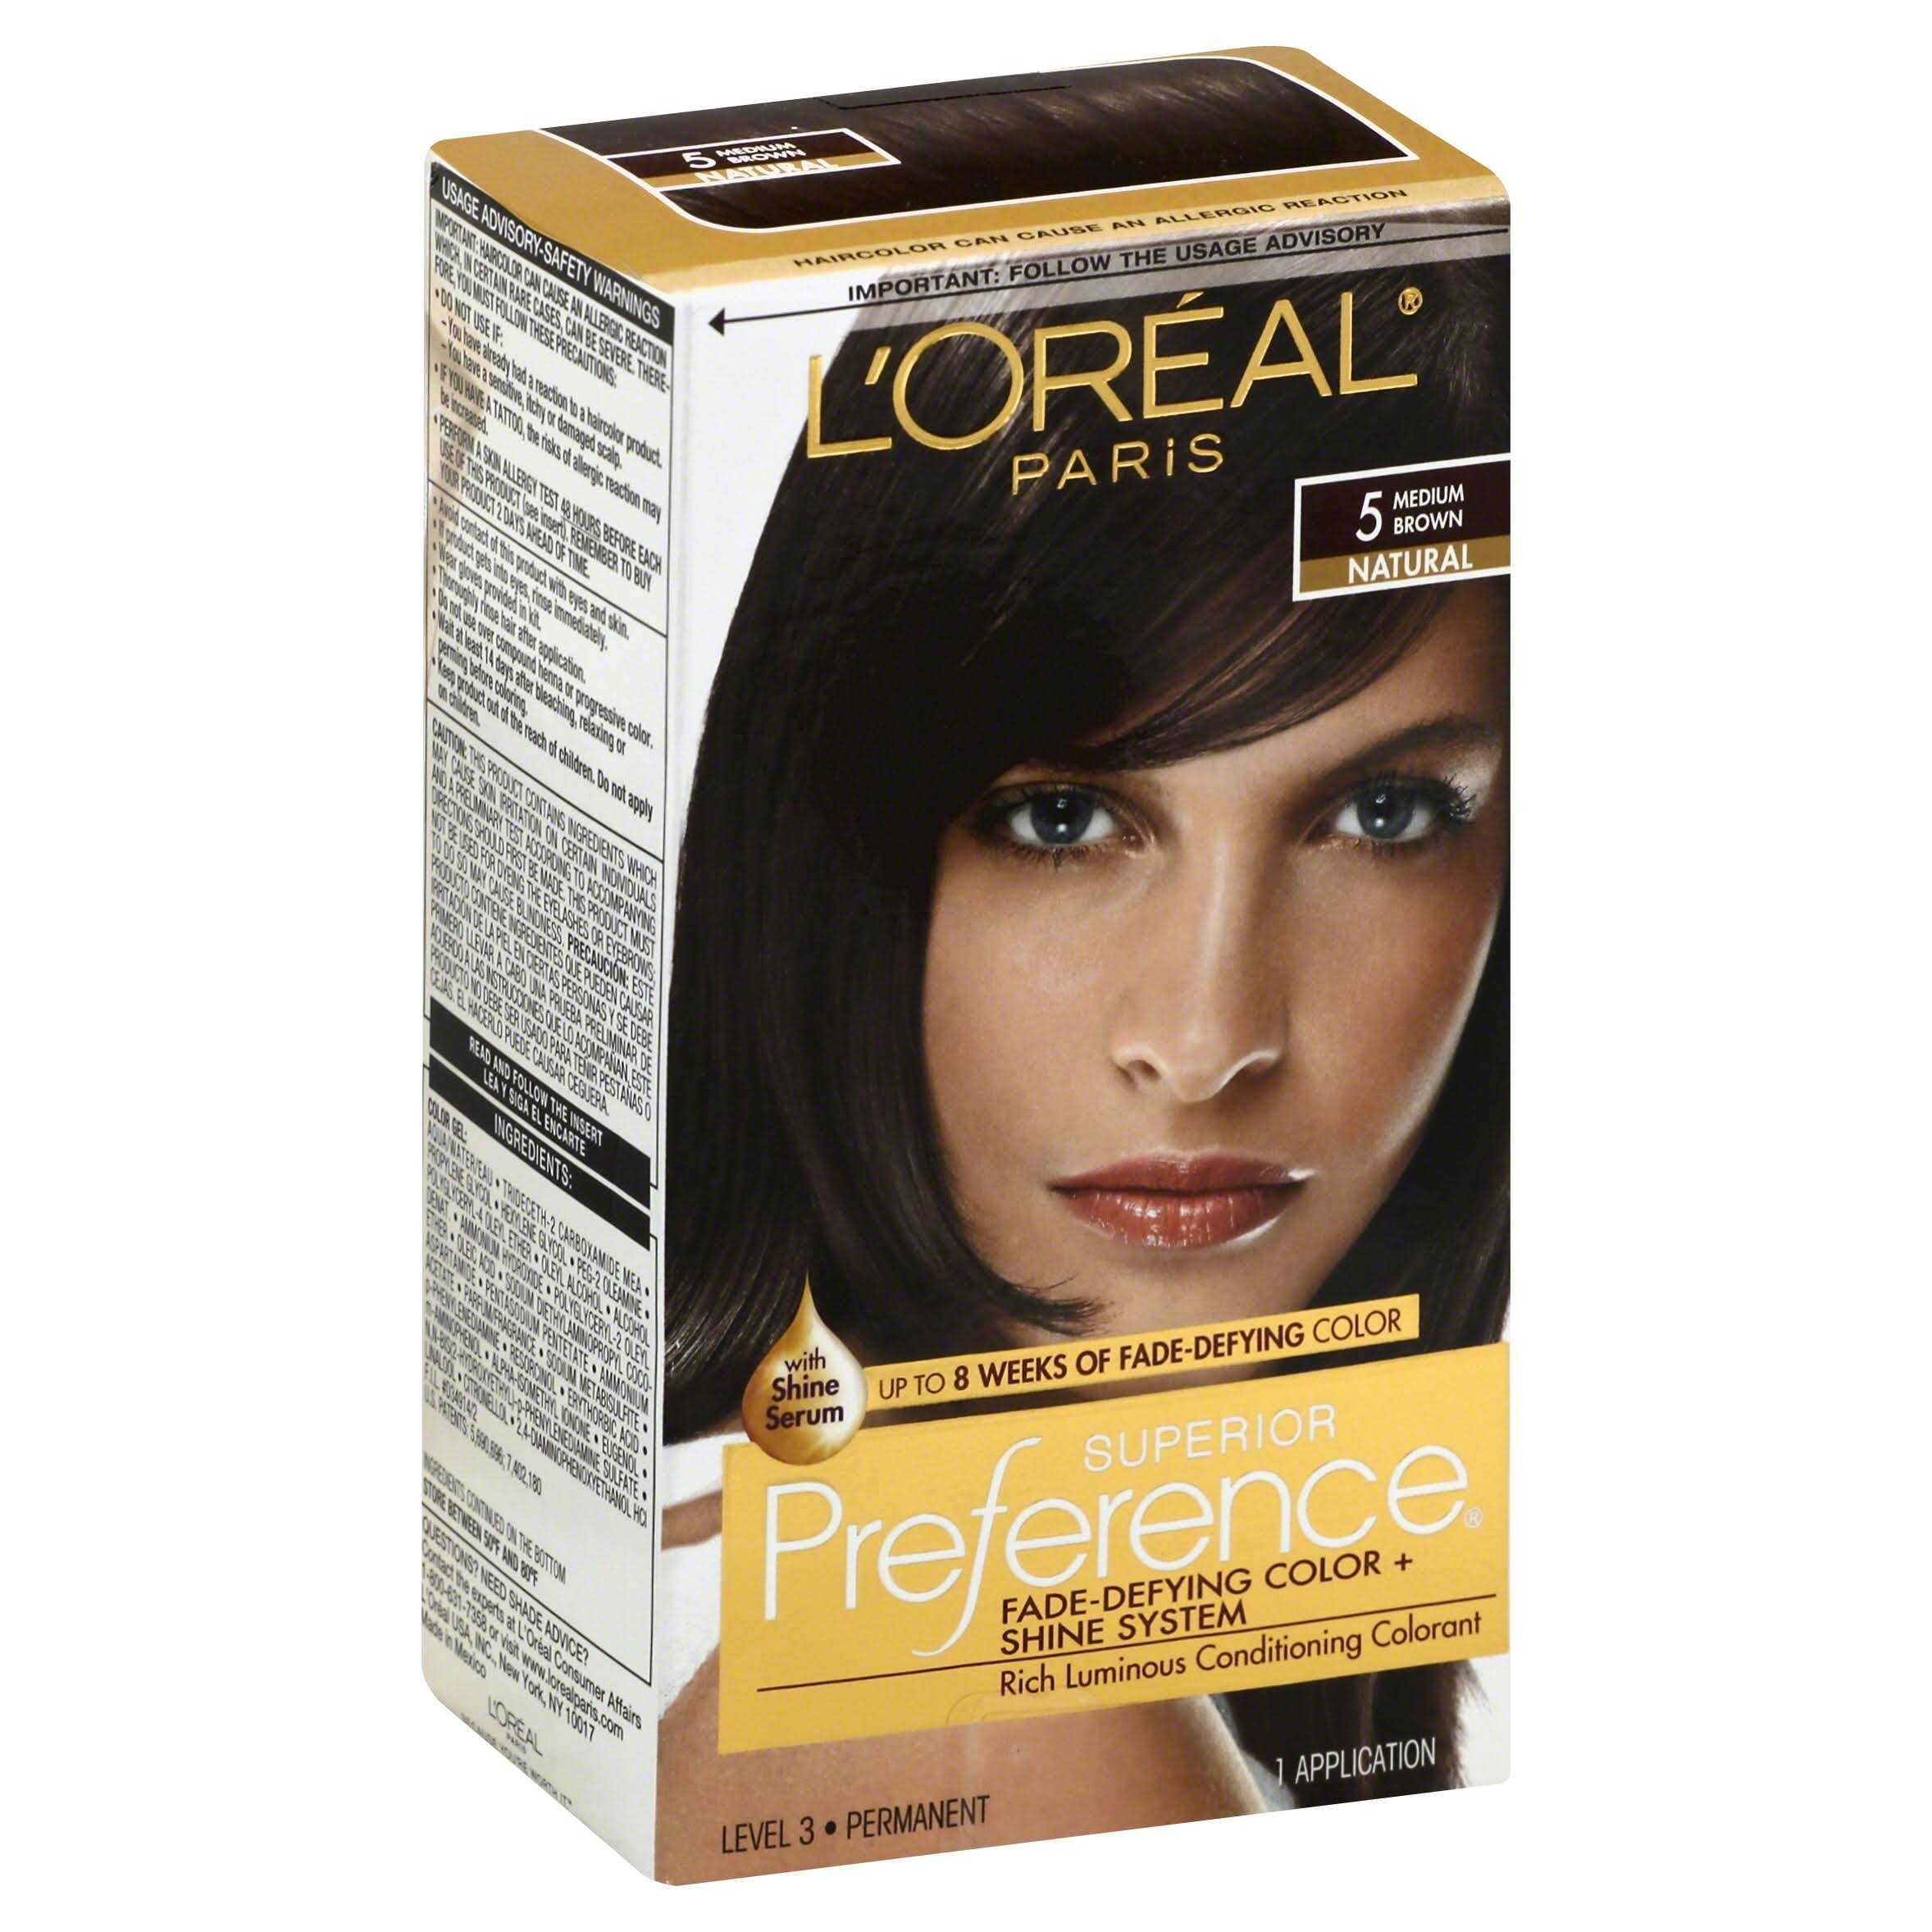 L'Oréal Paris Superior Preference Natural Haircolor - 5 Medium Brown